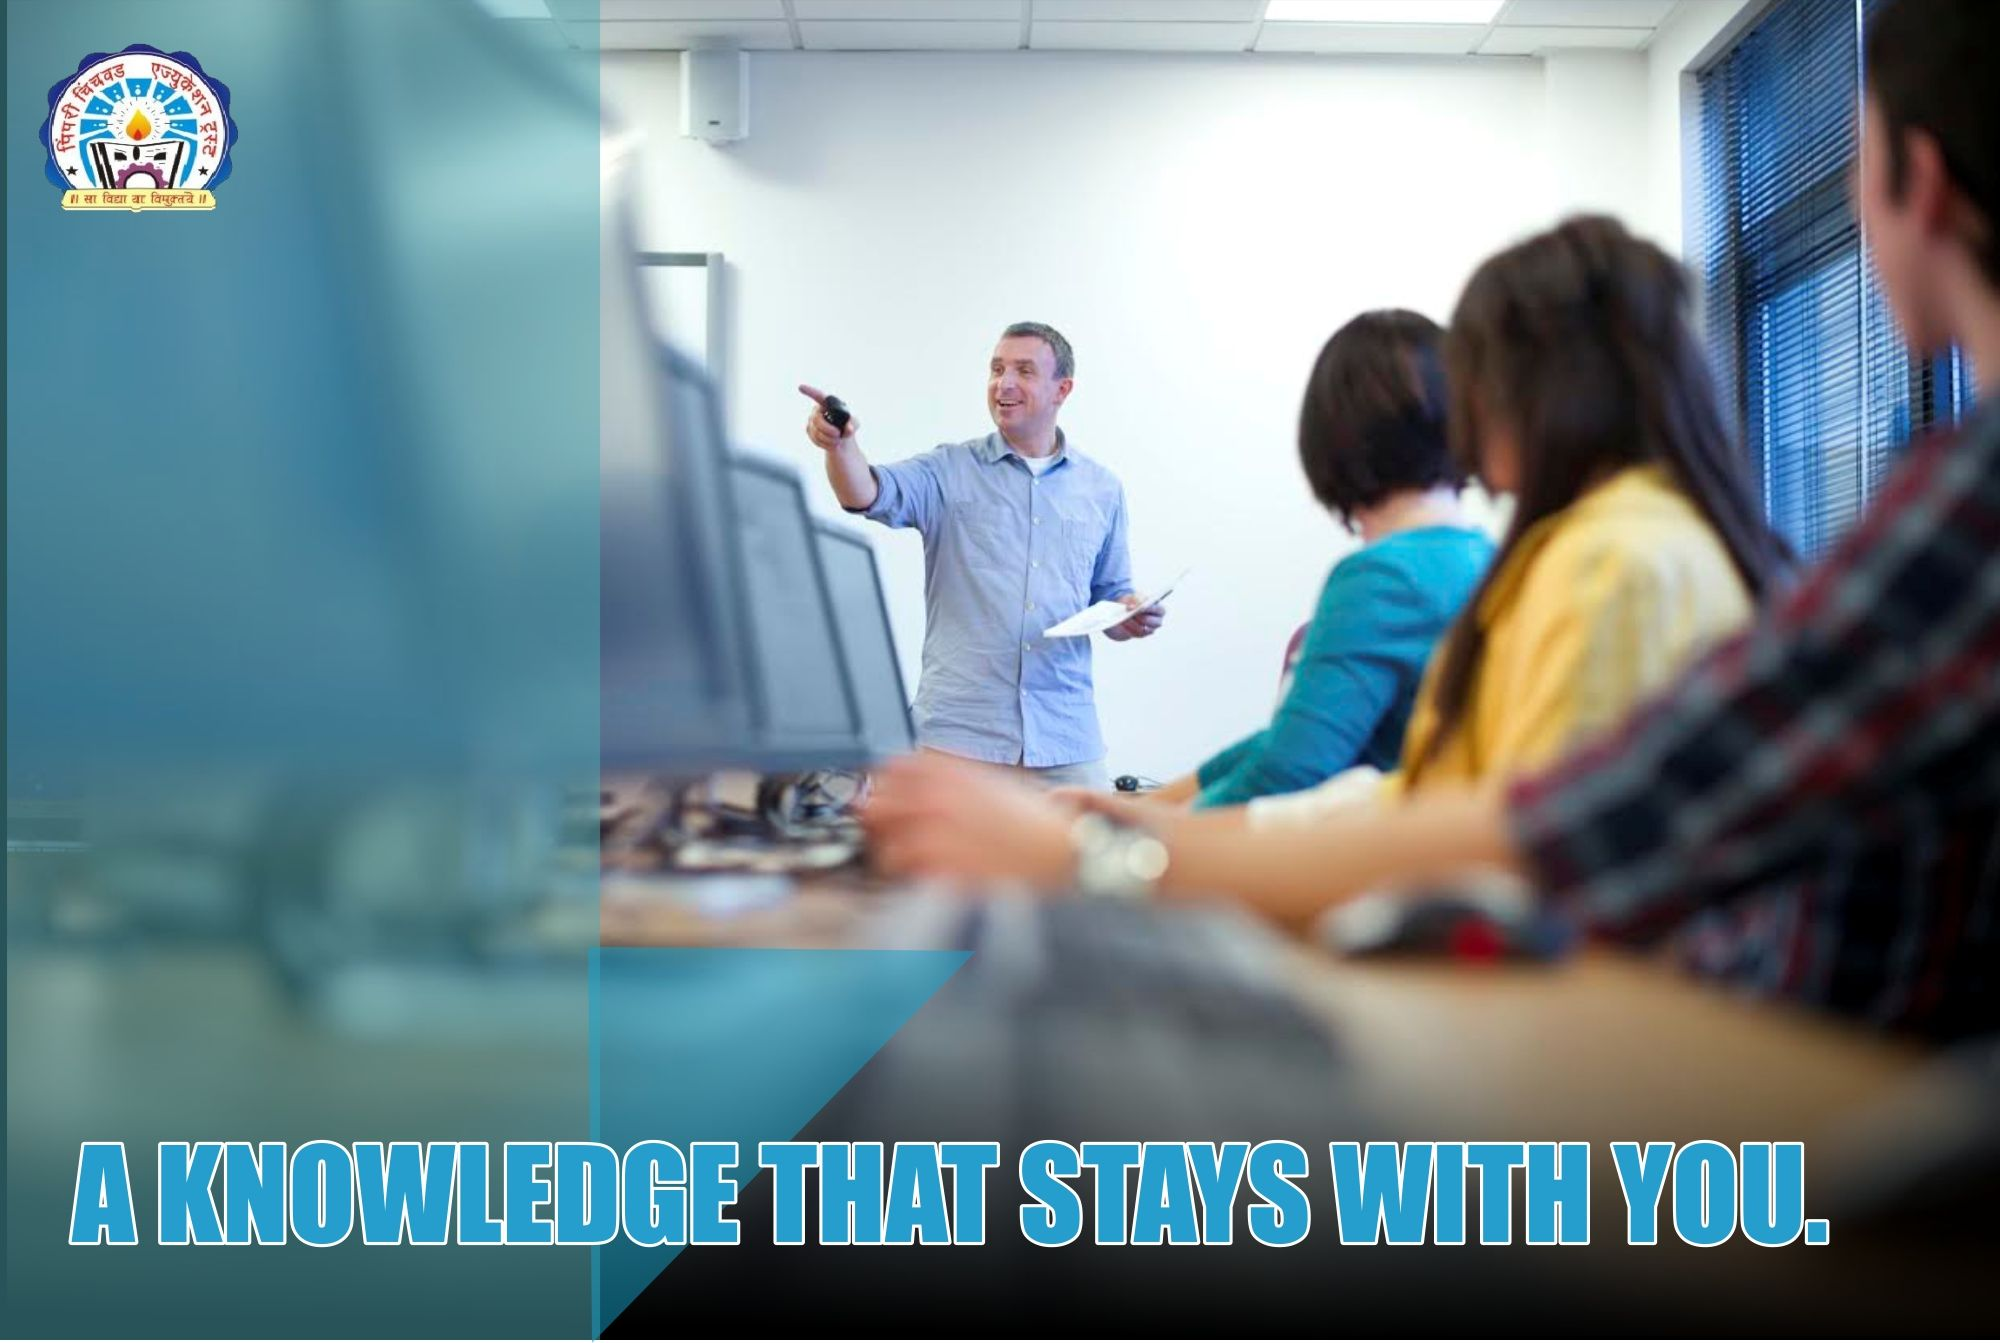 With our strategical teaching methods, we try to open